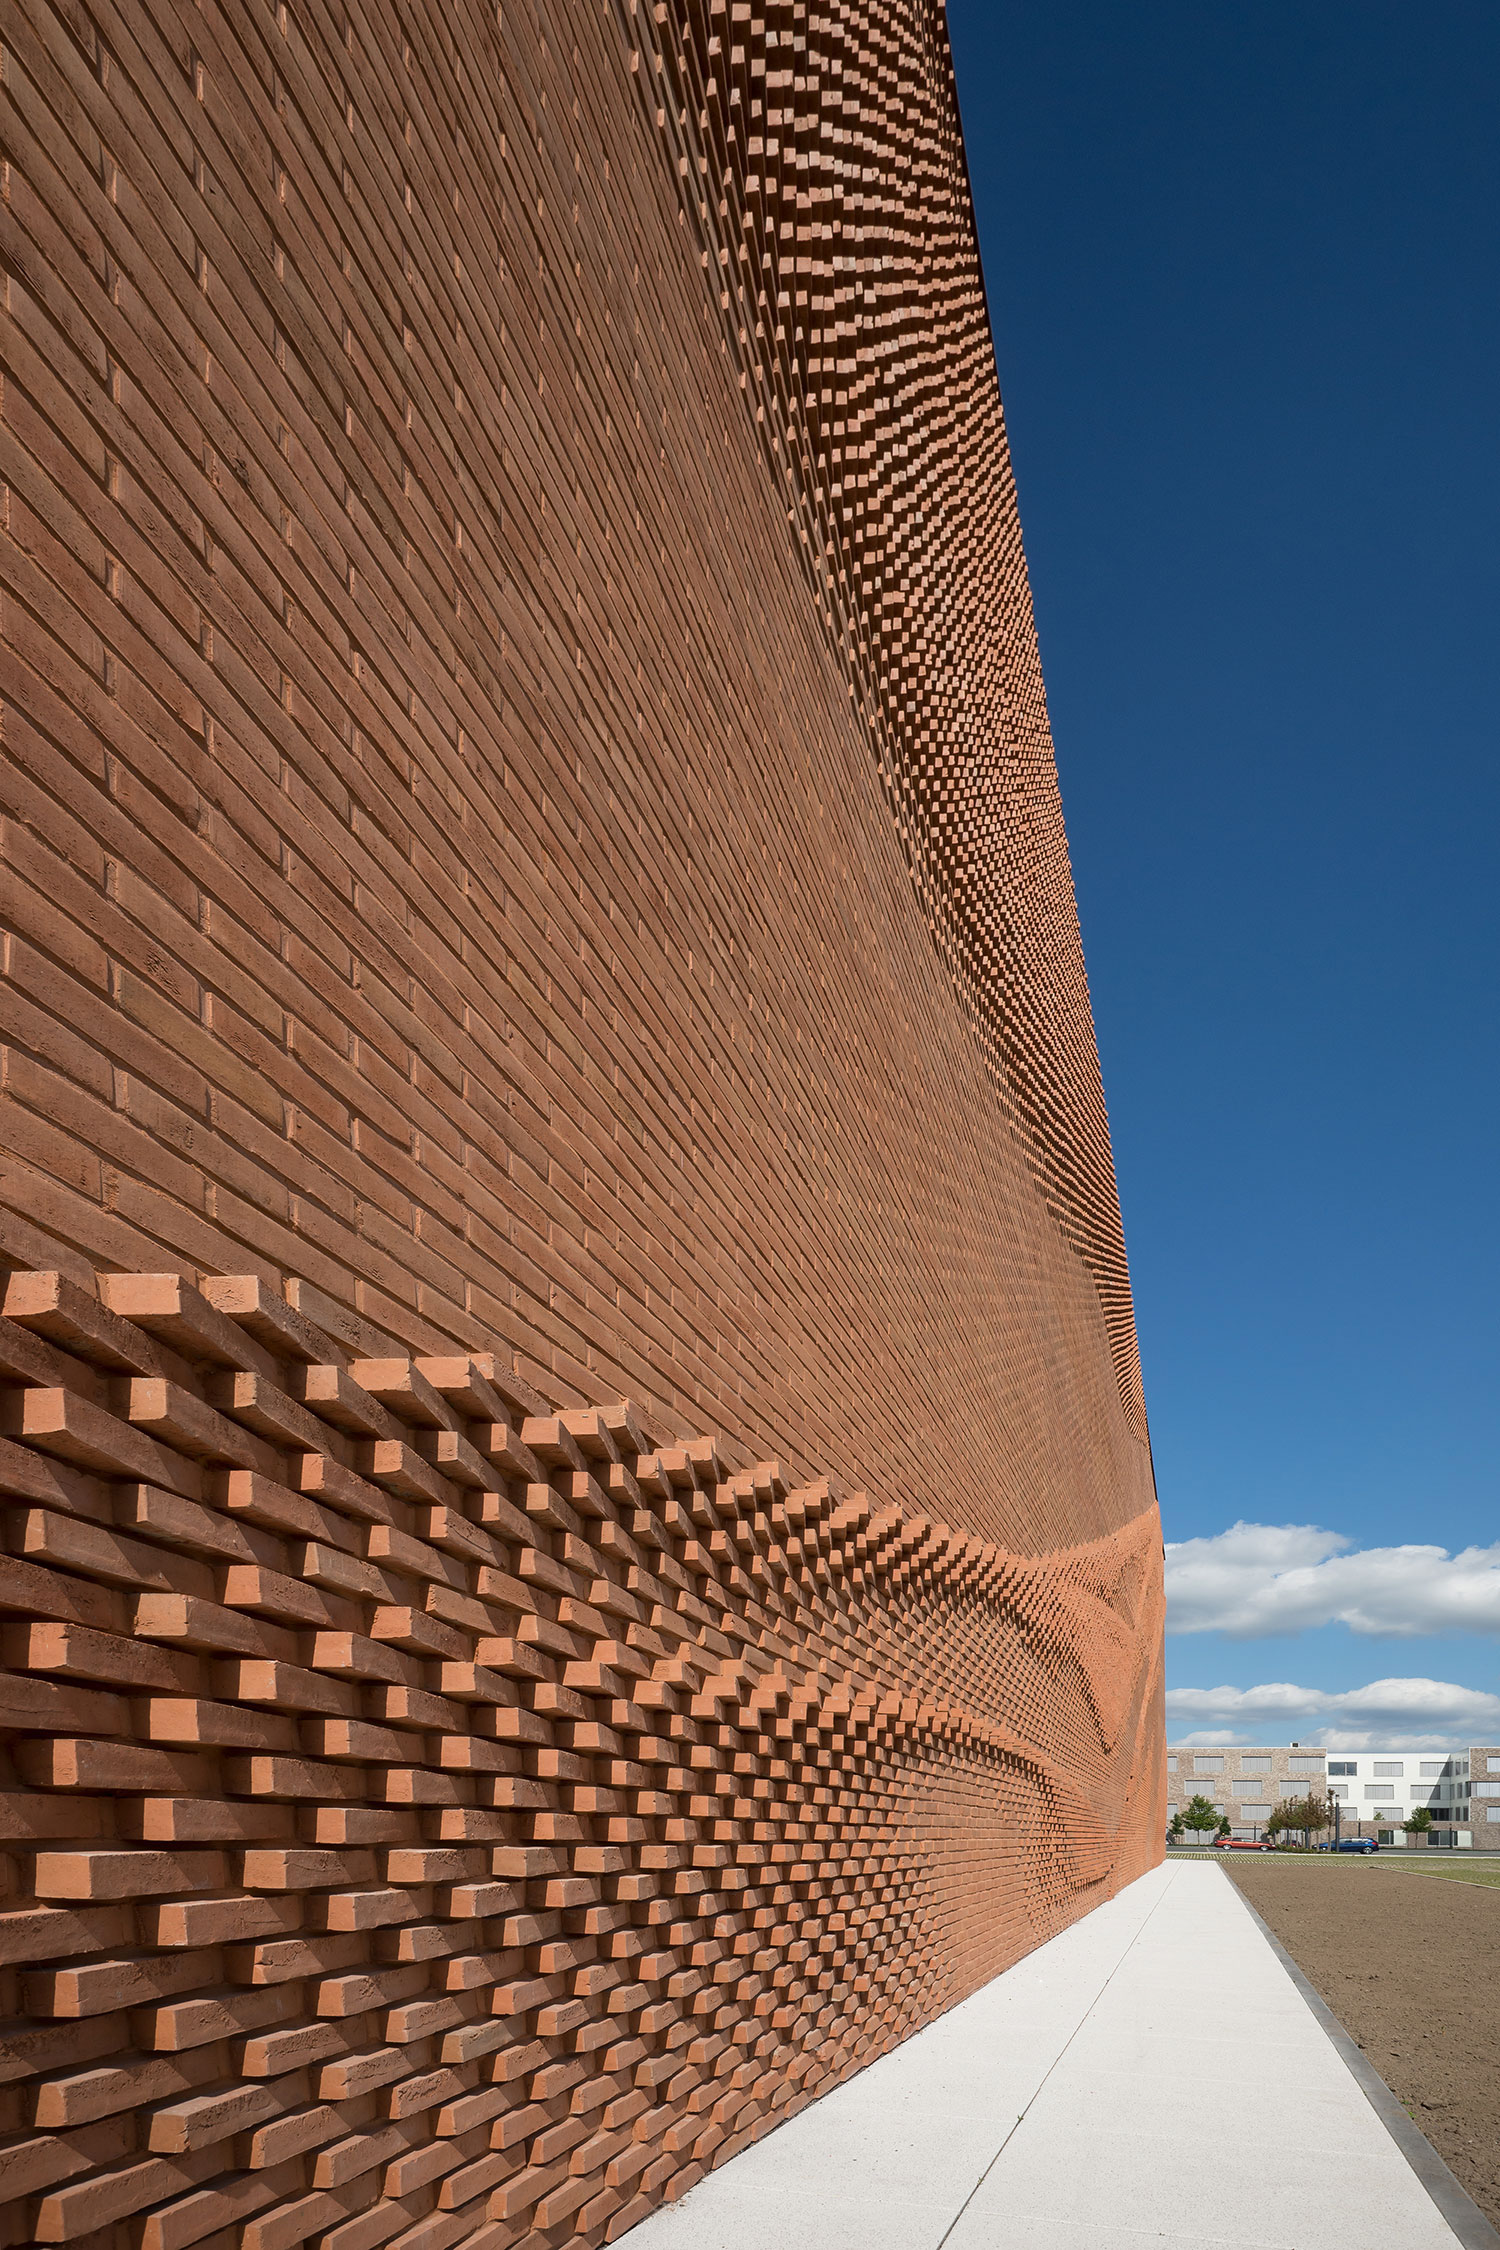 An Undulating Brick Facade Imitates the Free-Flowing Movement of Draped Fabric | Colossal